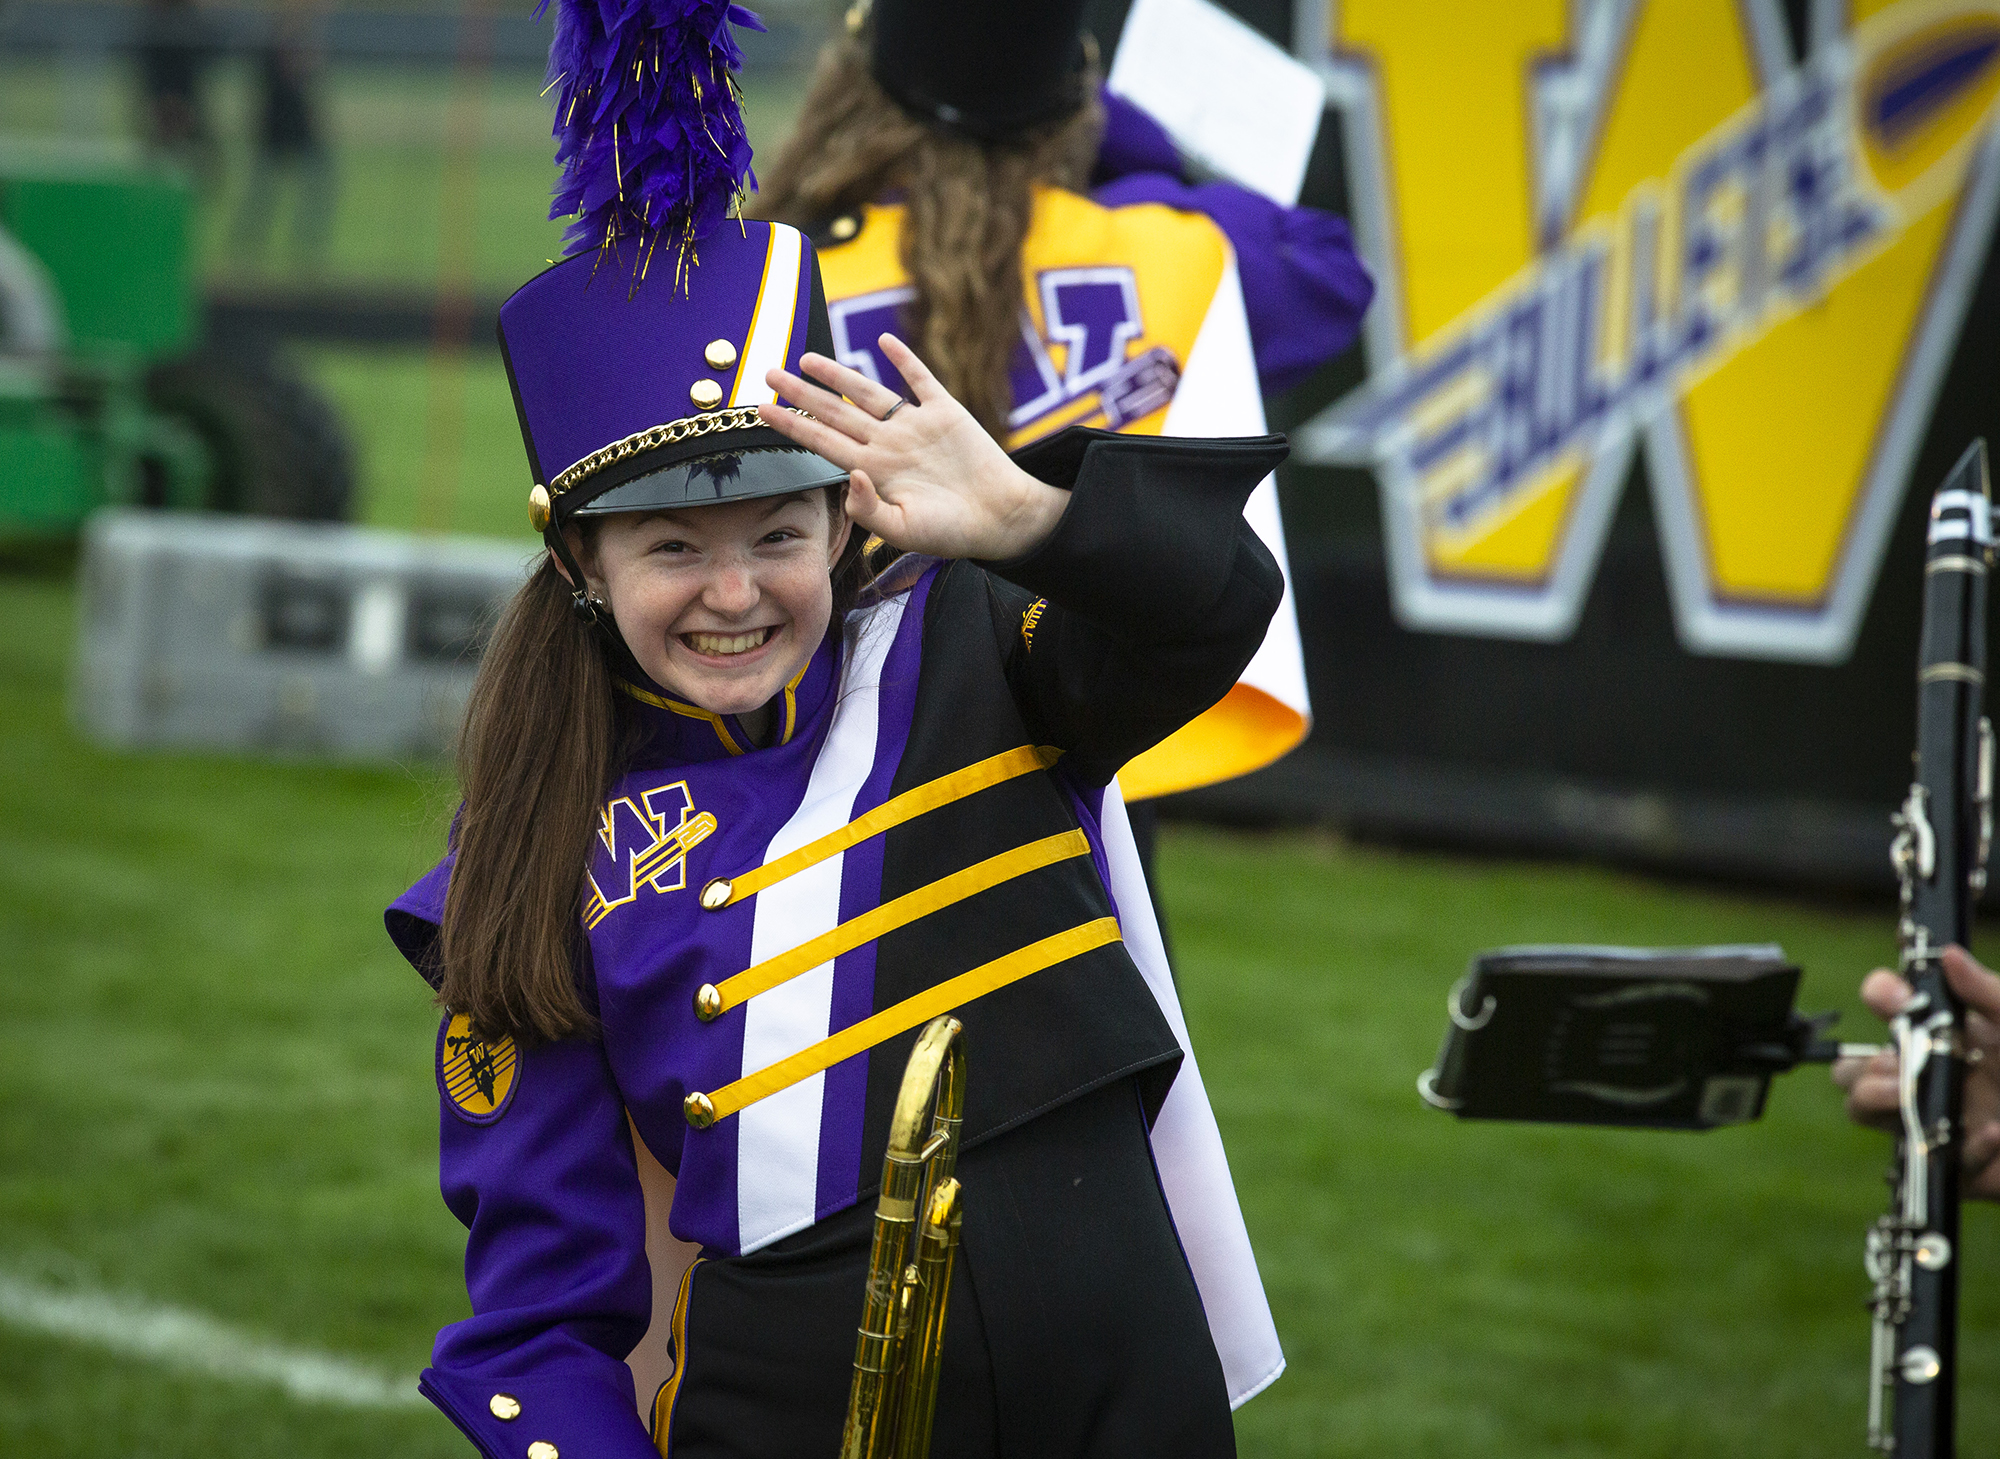 Addison Lopian waves to her grandfather, Jeff Lopian, before she takes the field with the Williamsville High School band Friday, Aug. 24, 2018 at Williamsville High School in Williamsville, Ill. [Rich Saal/The State Journal-Register]